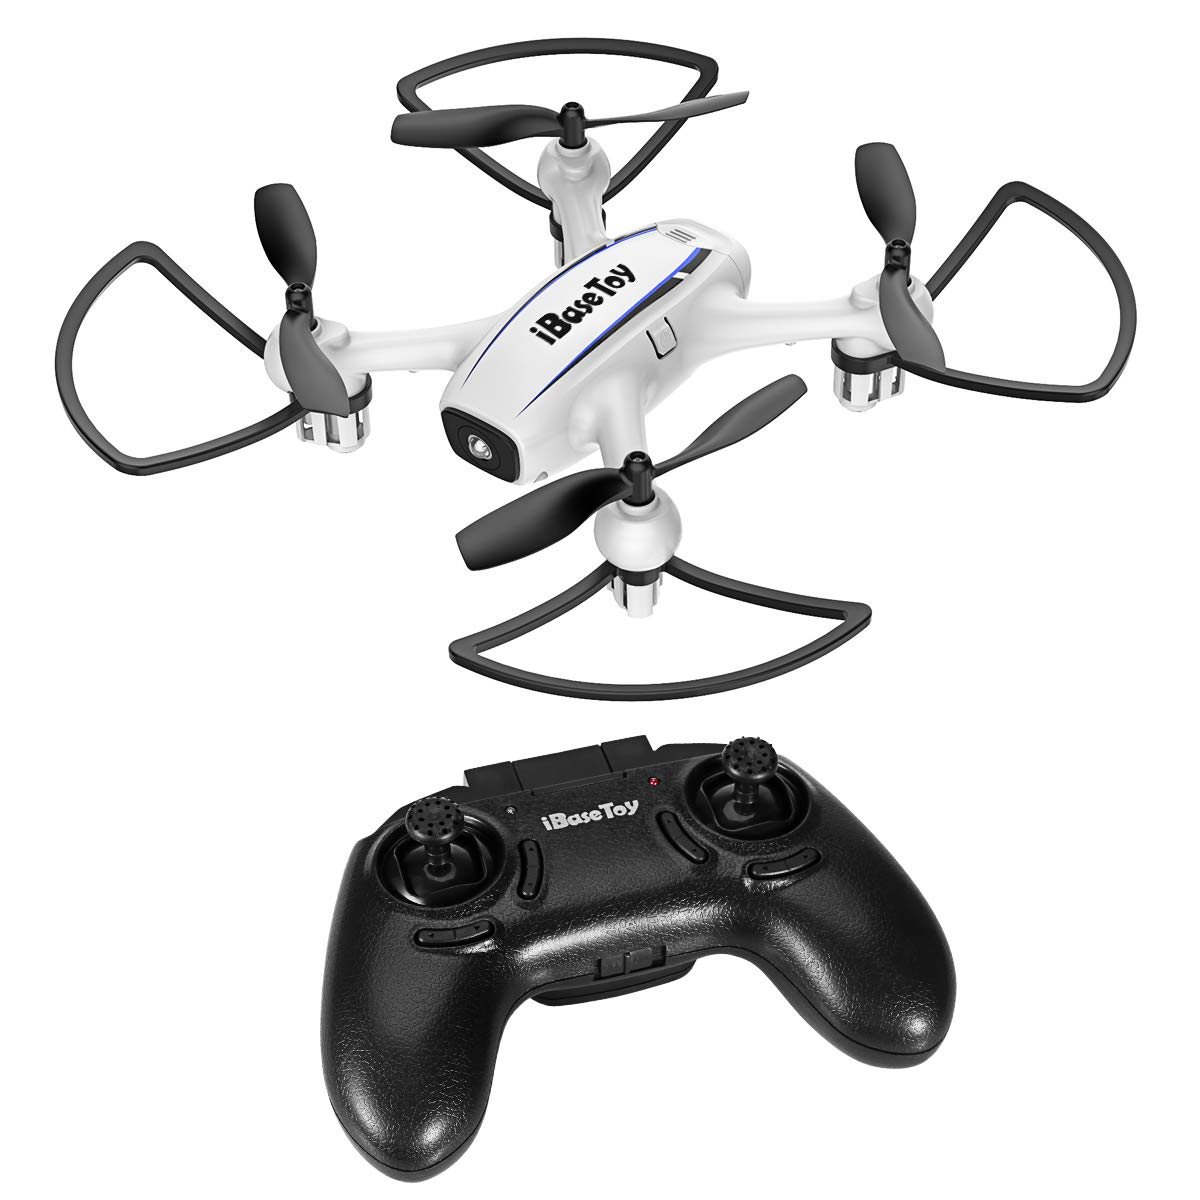 amazon mini rc quadcopter drone for kids adults and beginners Wildcat Wiring Diagram mini rc quadcopter drone for kids adults and beginners ibasetoy training quadcopter 2 4ghz 6 axis gyro 4 channels with altitude hold function 3d flips